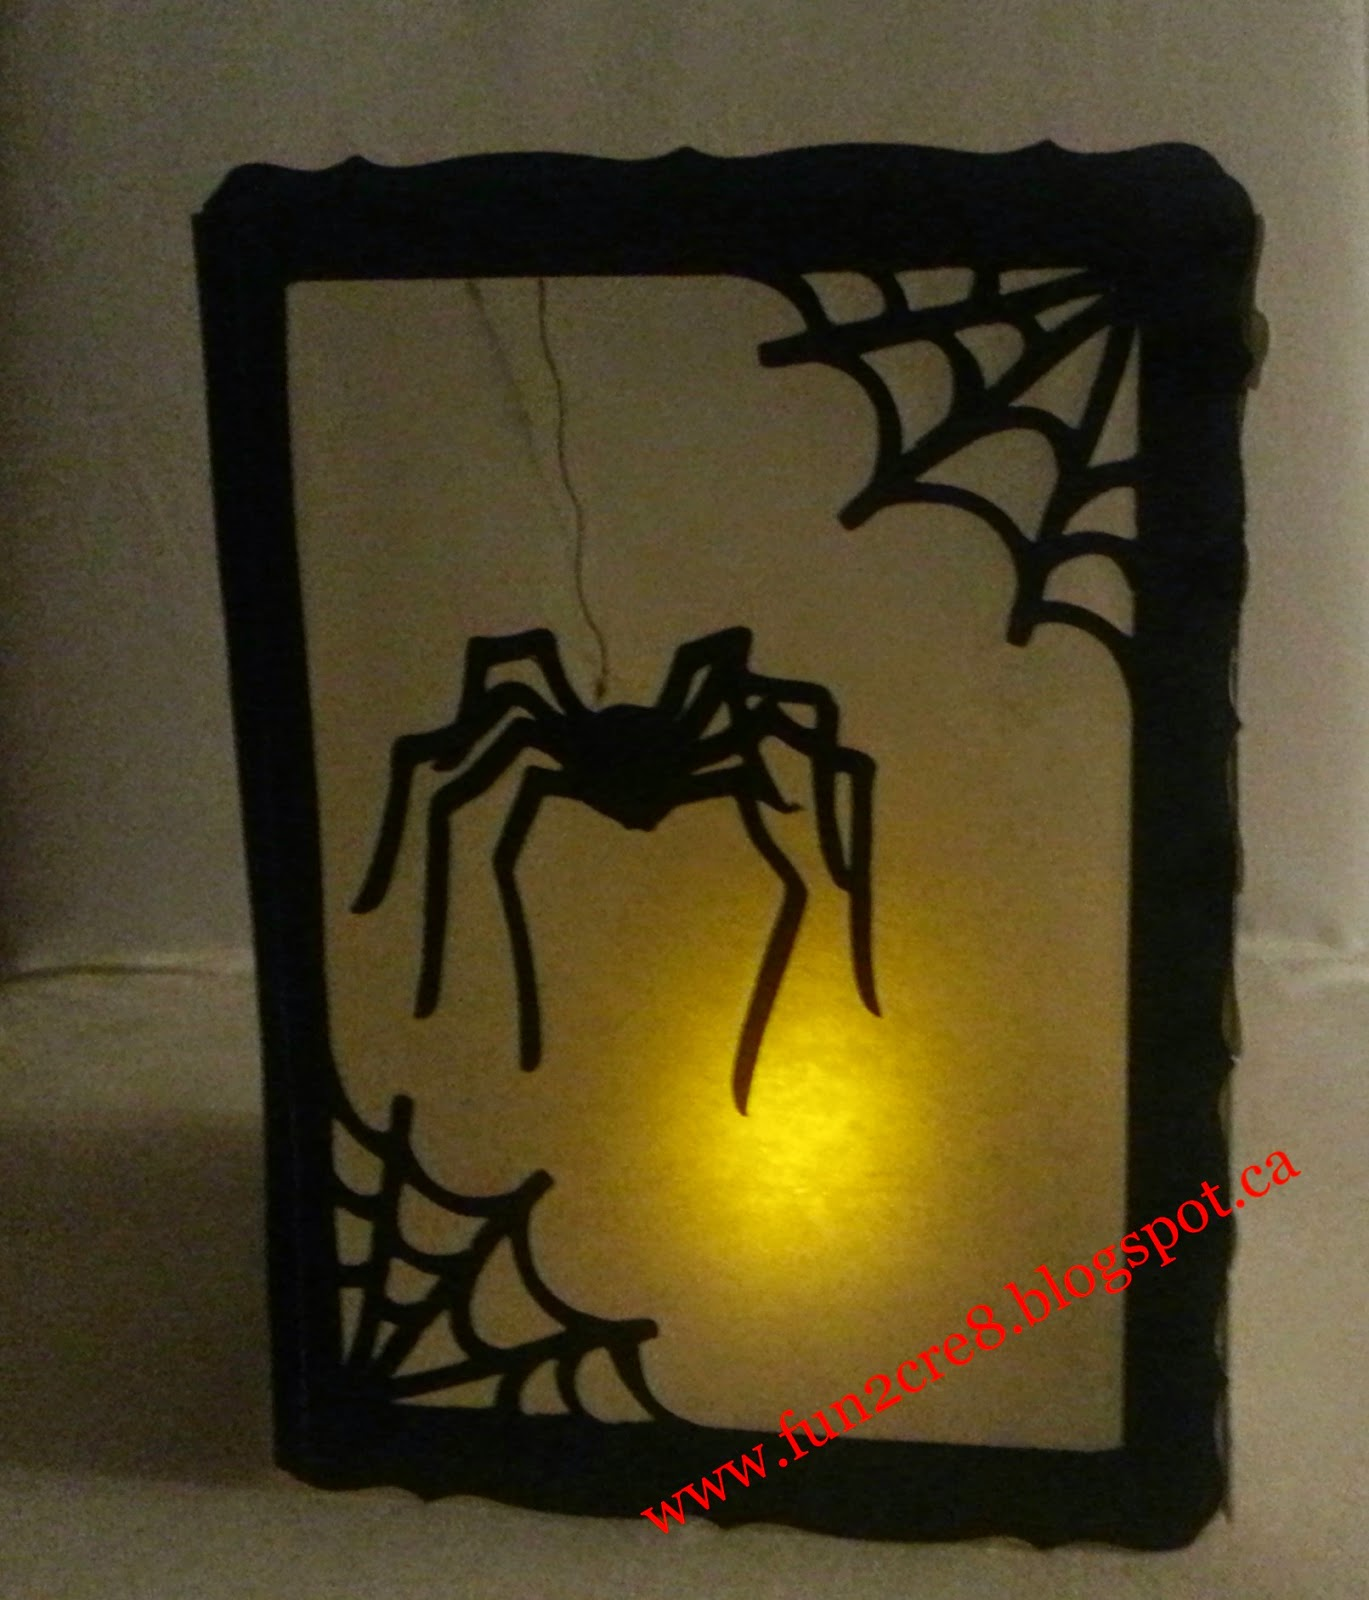 CTMH Spooky Halloween Luminary with Artbooking